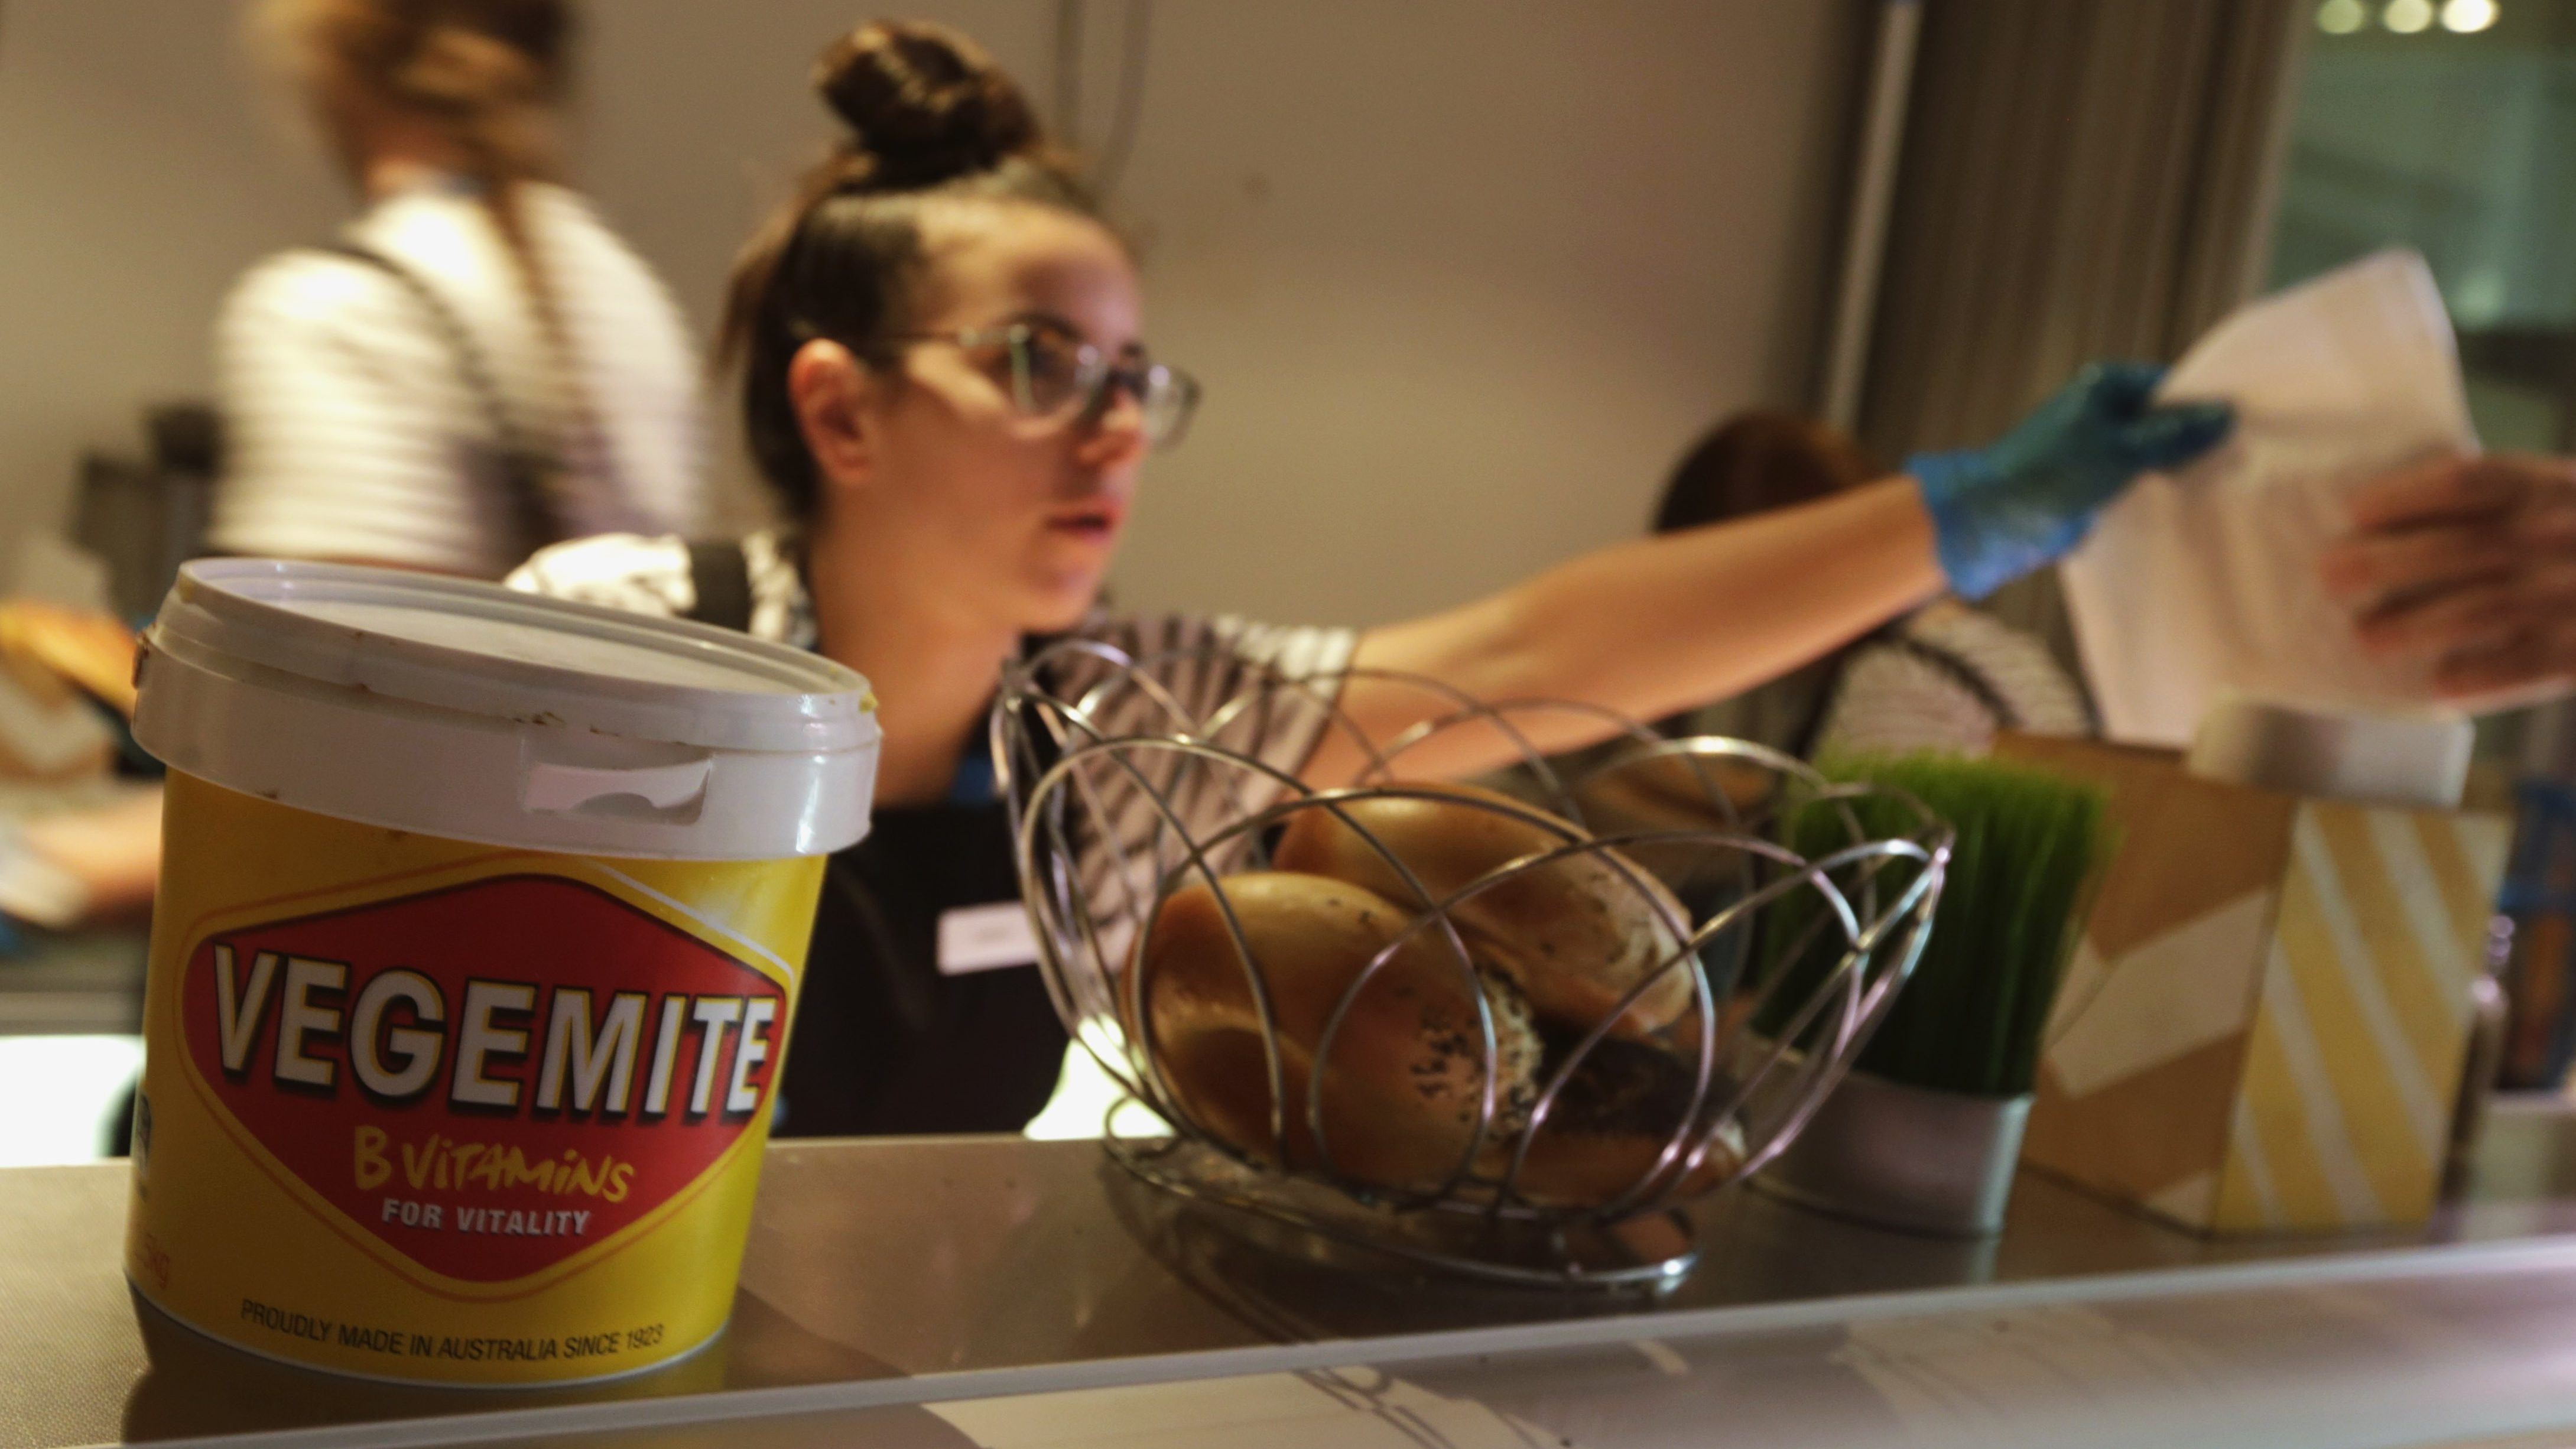 A tub of Vegemite is seen at a local cafeteria in Melbourne, Australia